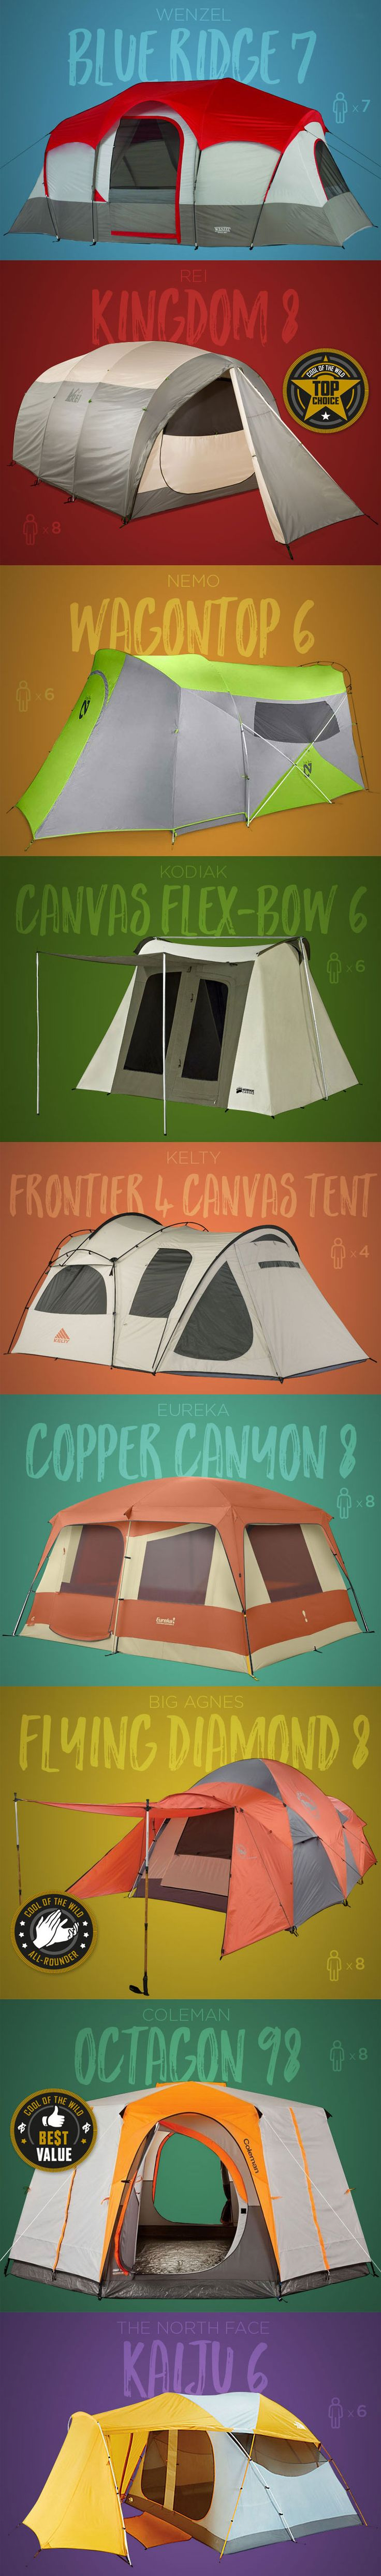 Check out this essential guide on what to look for in the perfect tent for your family get aways and read reviews on the best family camping tents in 2017